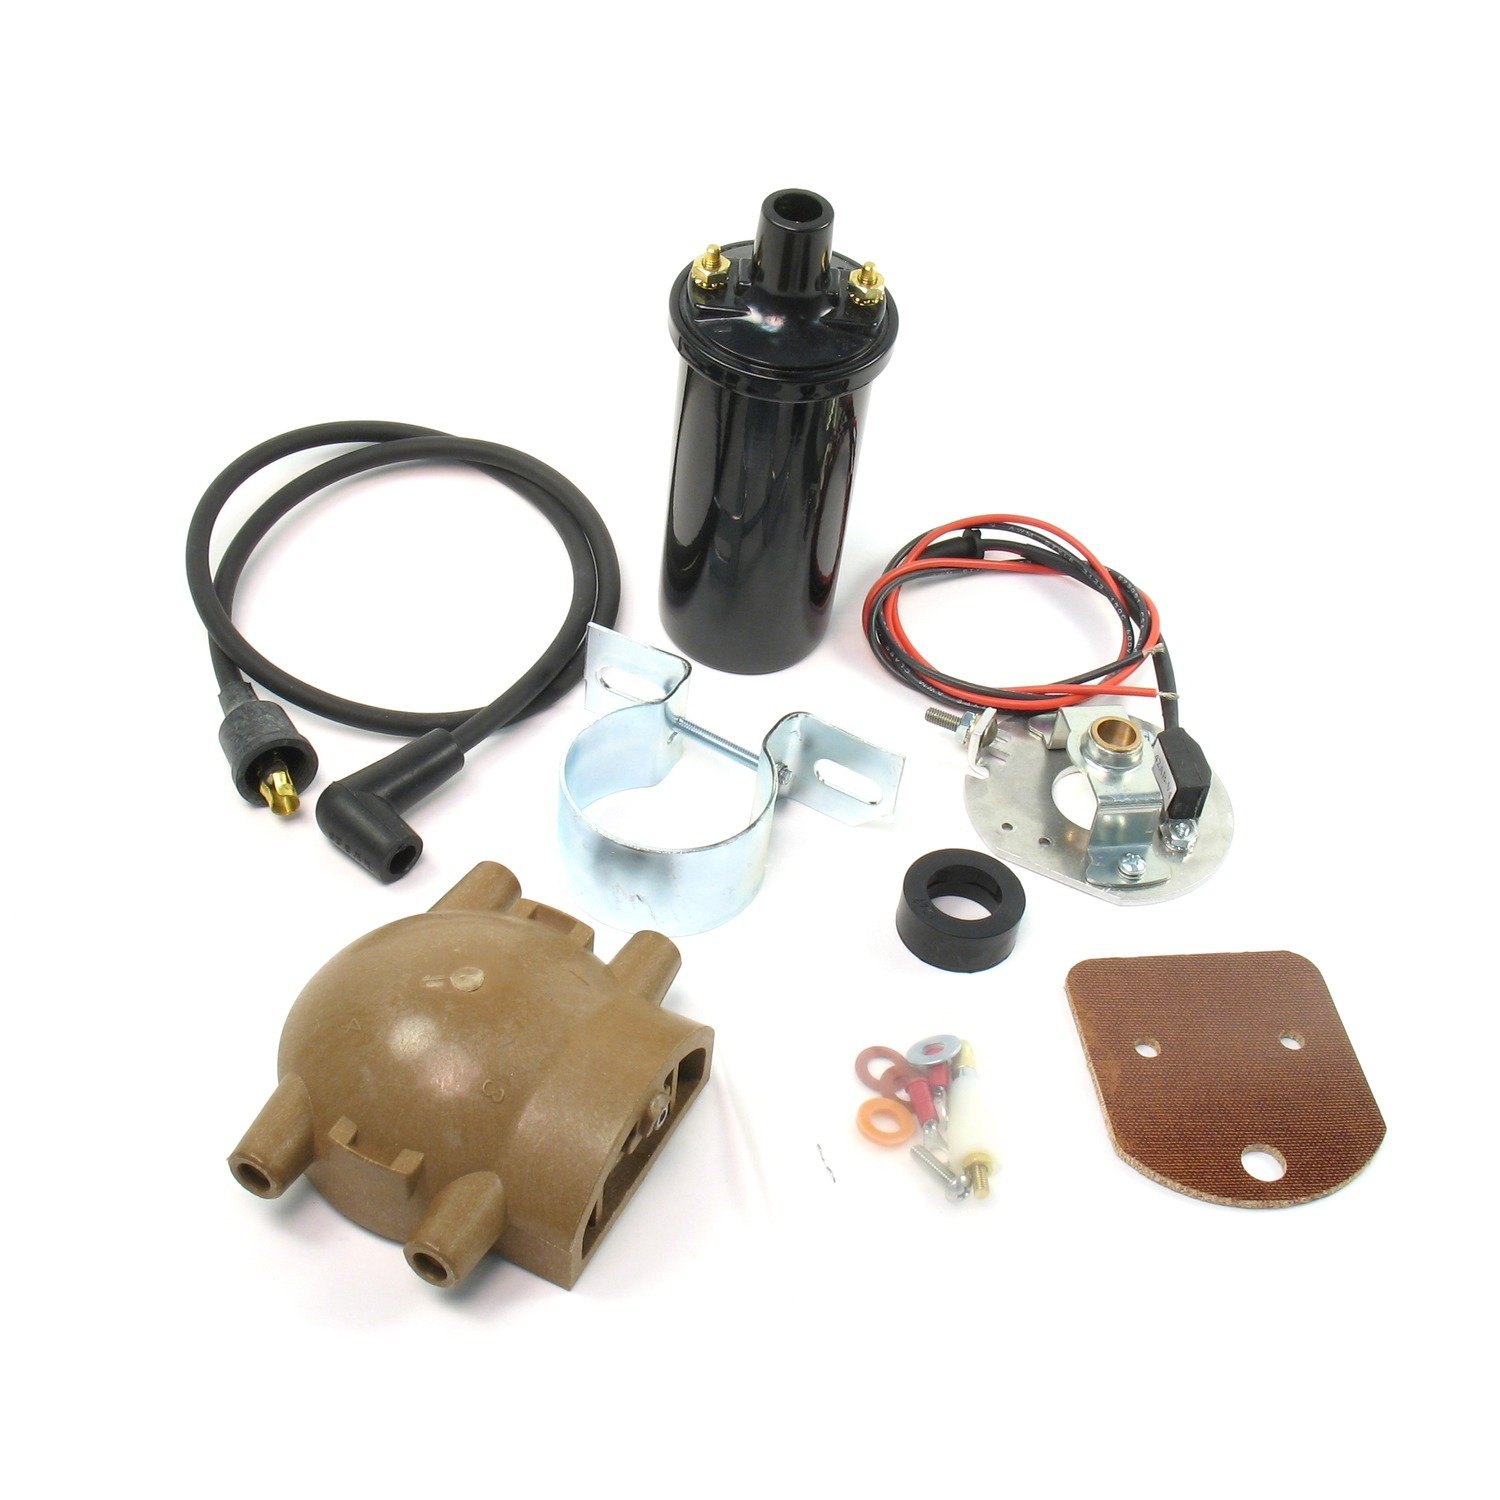 Amazon.com: Pertronix 1247XT Ford 4 Cylinder Ignitor: Automotive